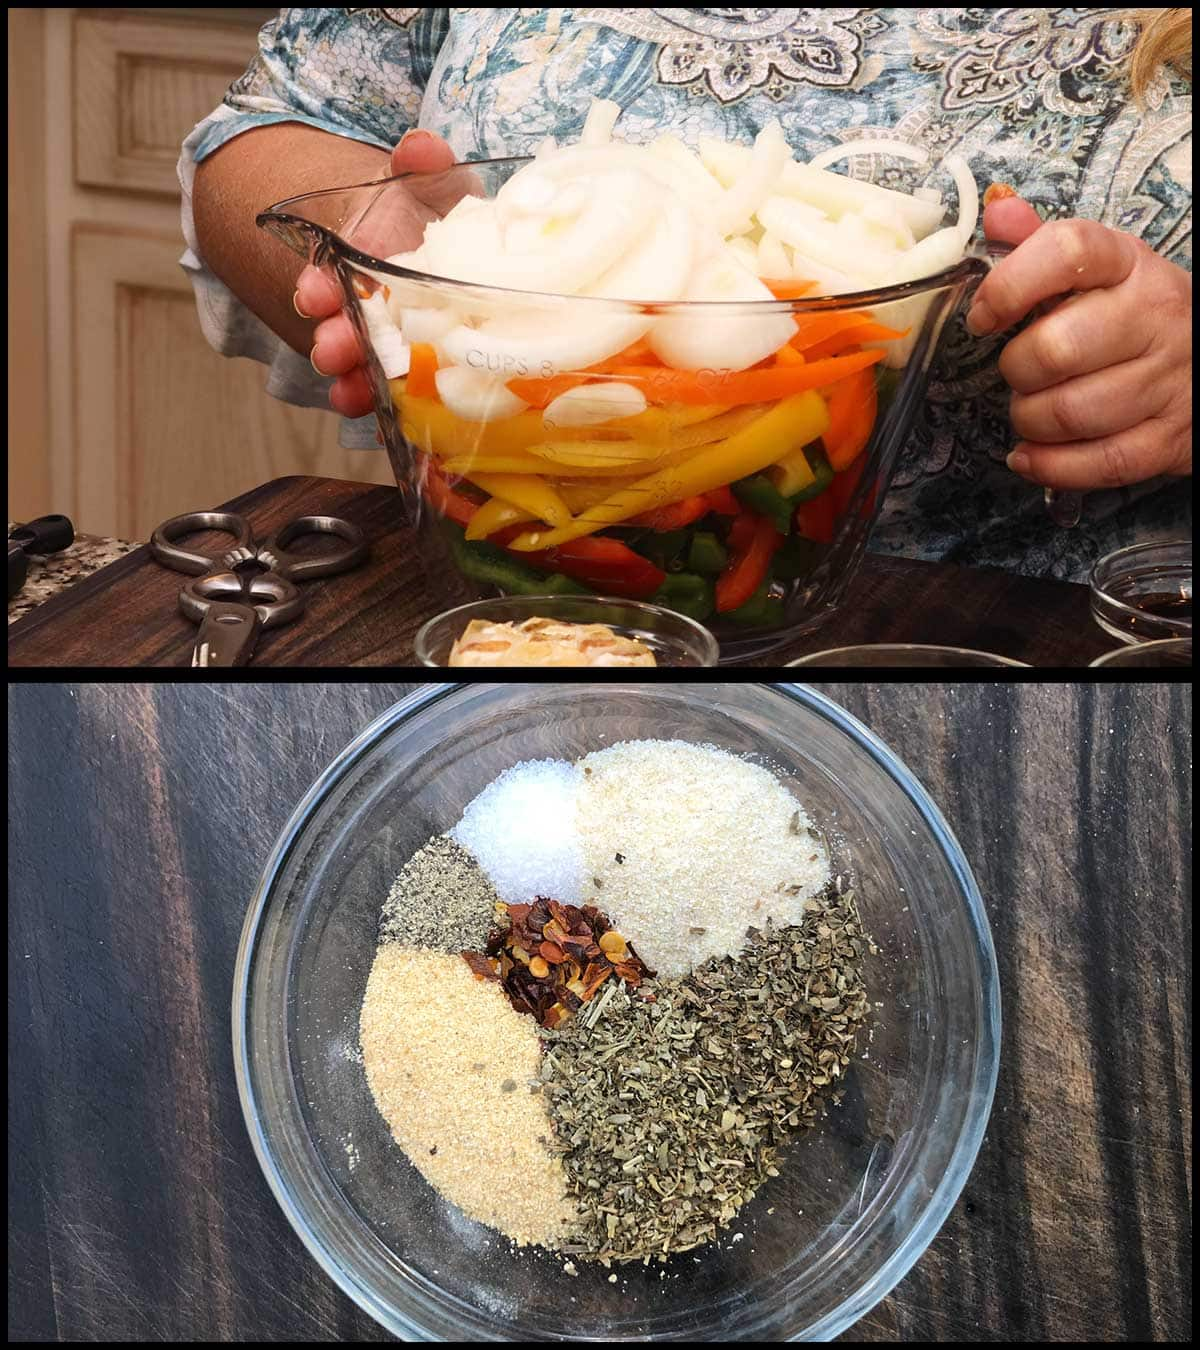 onions and peppers cut up into a bowl and seasonings measured out into a bowl